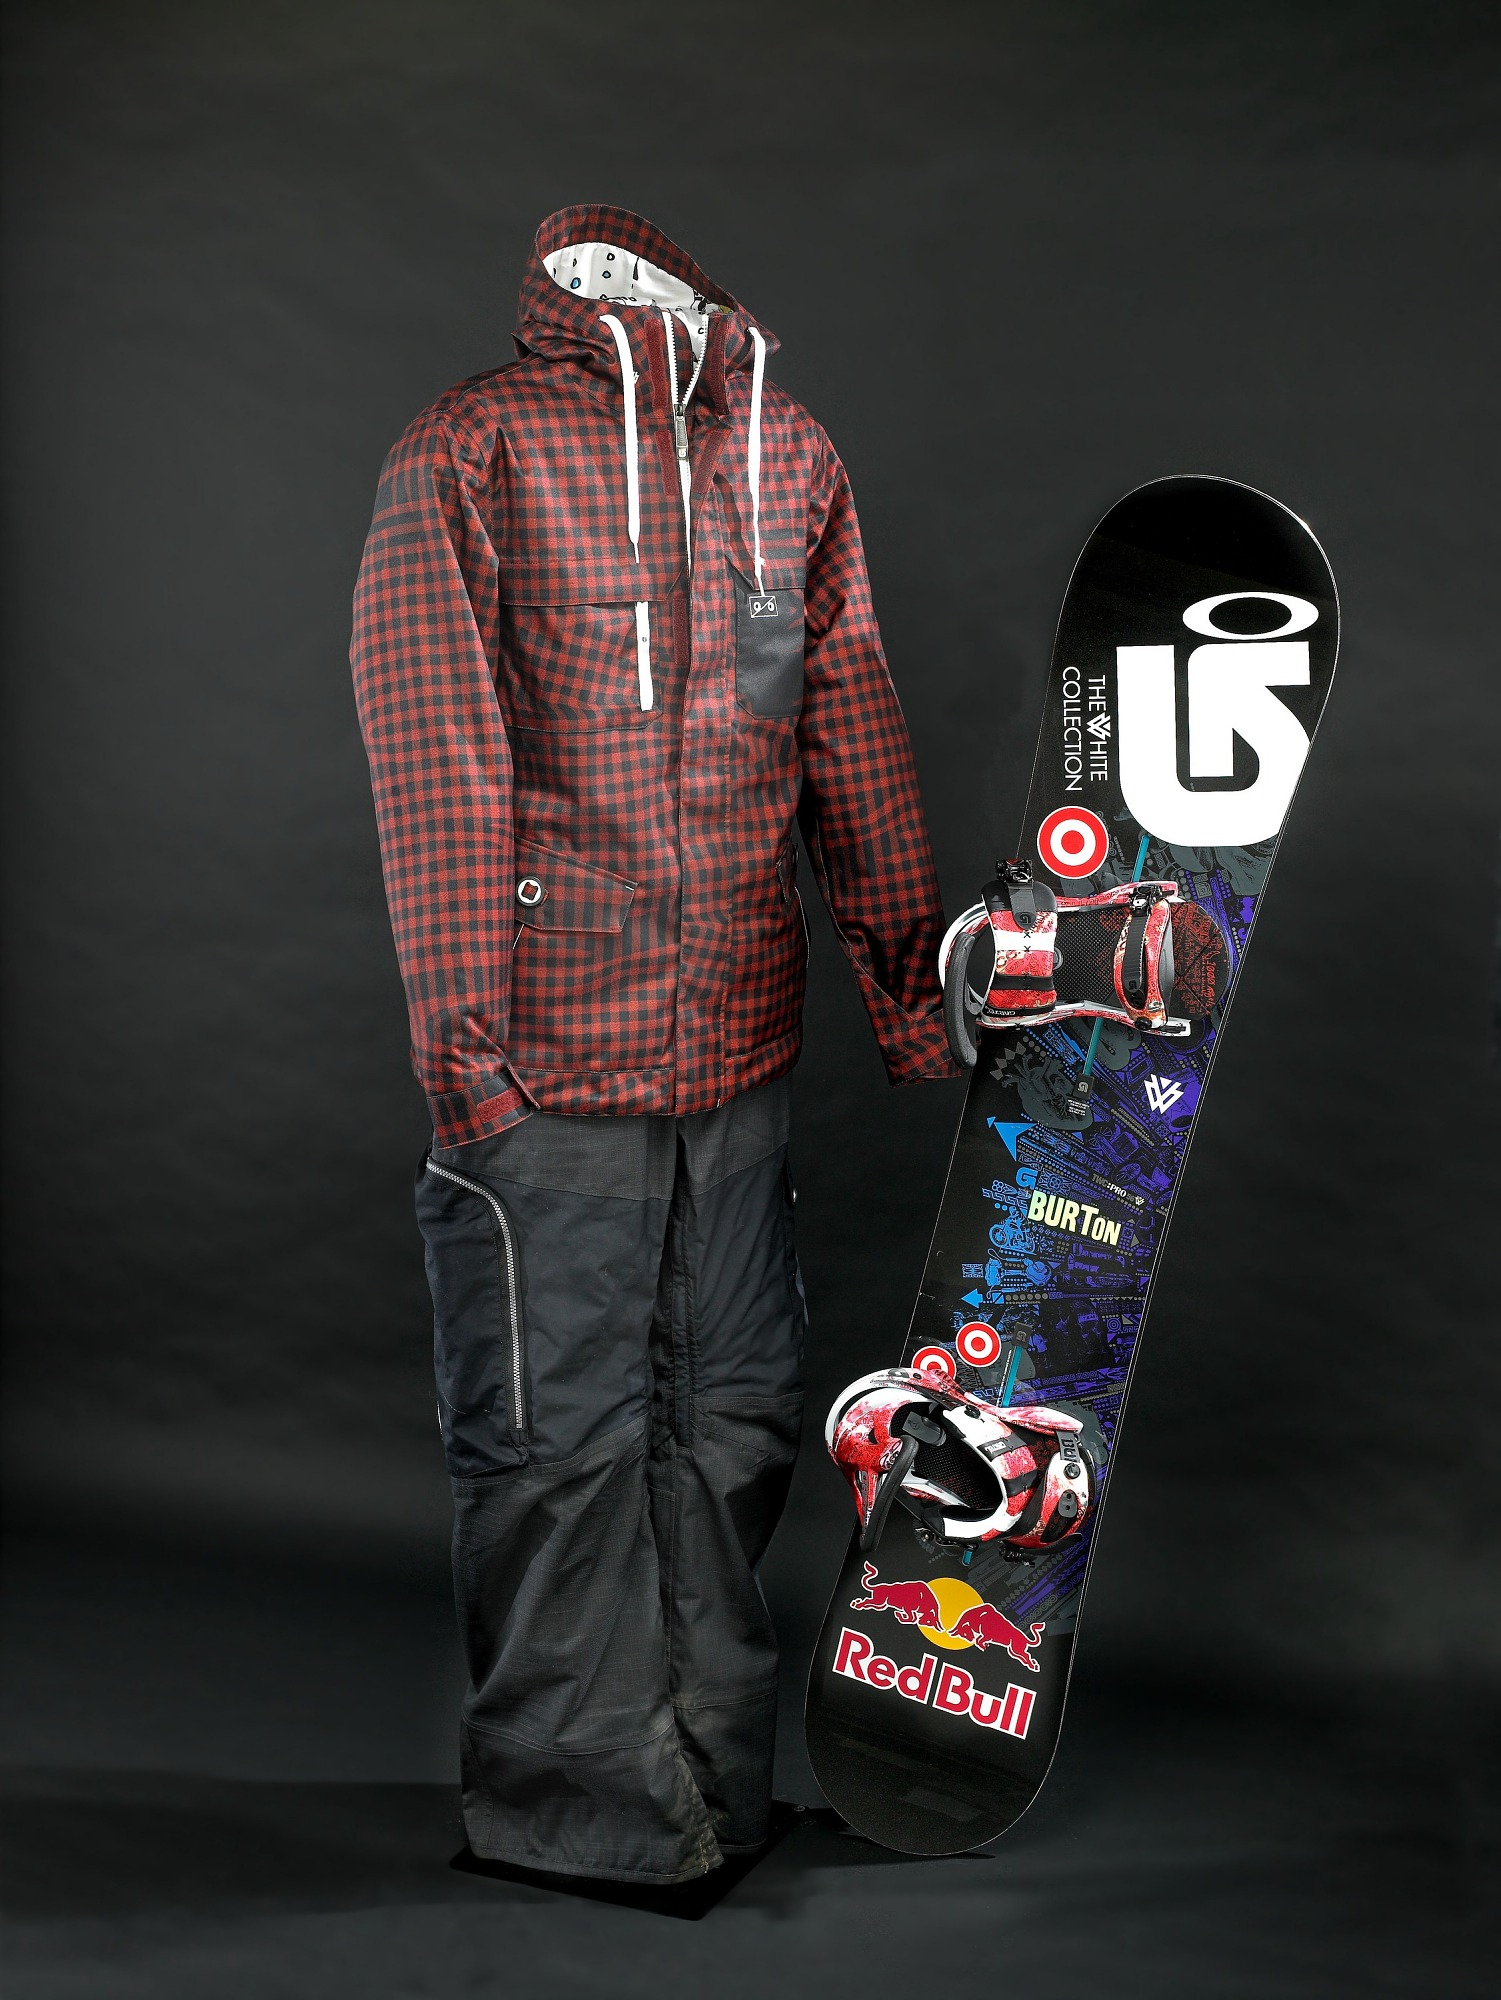 images for Jacket worn by Shaun White during the Red Bull Project X in Silverton, Colorado